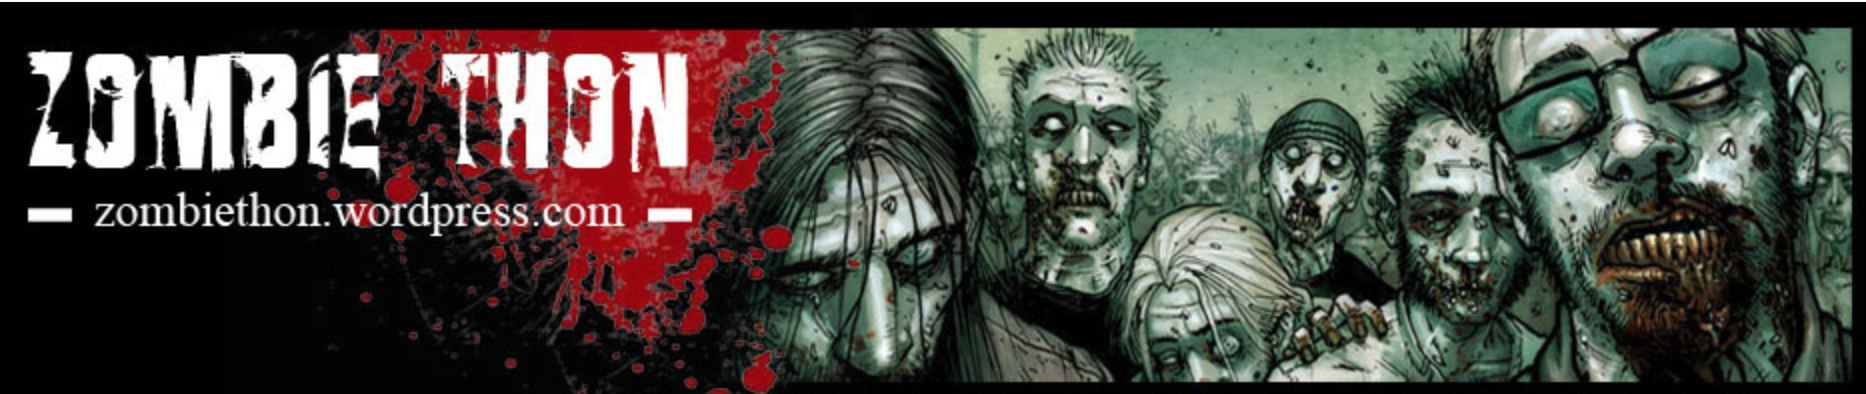 Zombie-Thon website banner. Photo: Zombiethon.wordpress.com (Luke W. Boyd)